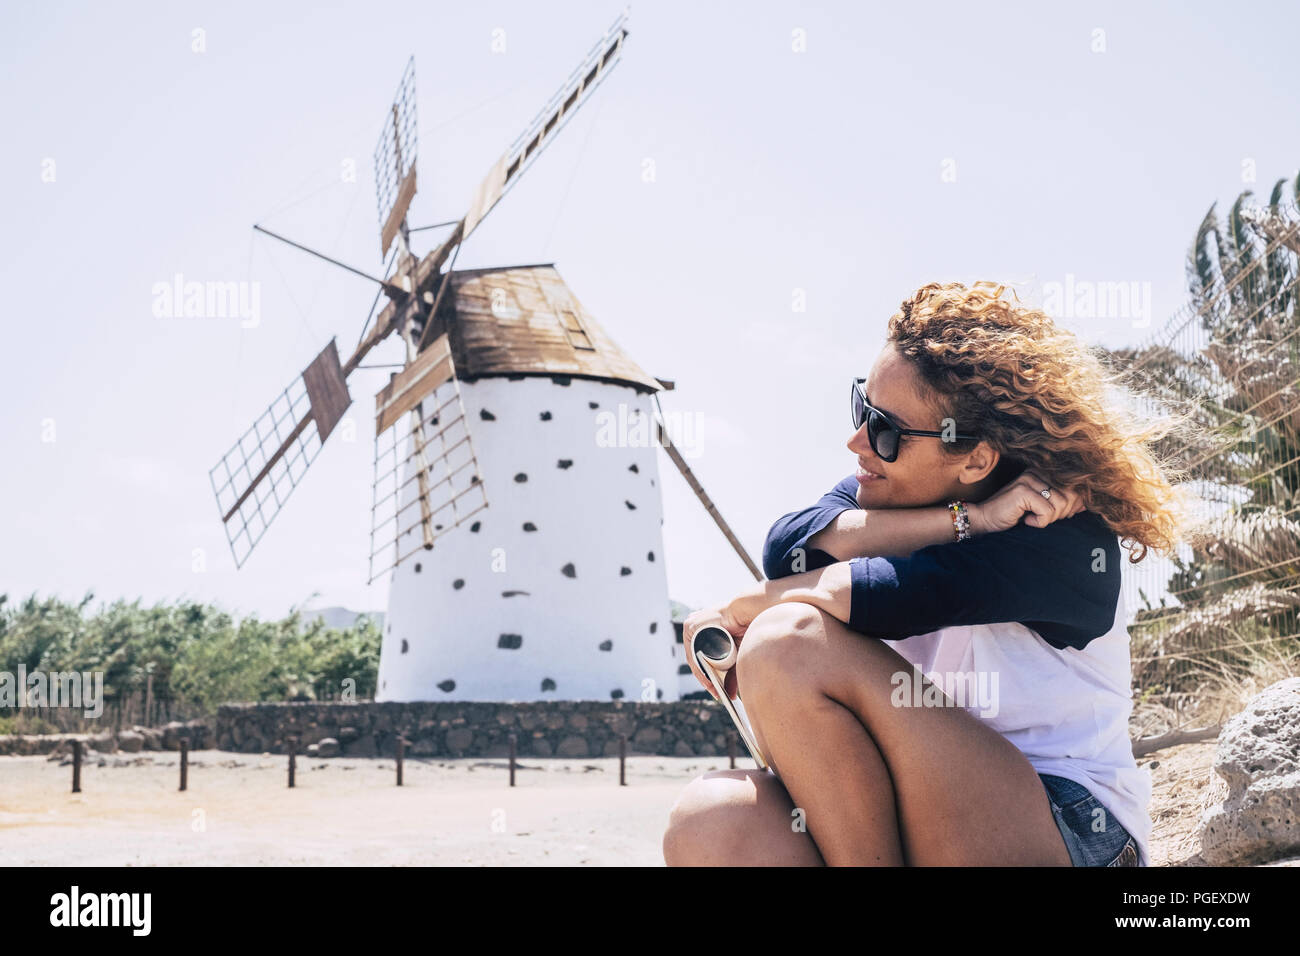 nice curly lady sitting and relaxing with sind in the hair and a wind mill on the background. country side scenic place for peace and relaxation conce - Stock Image